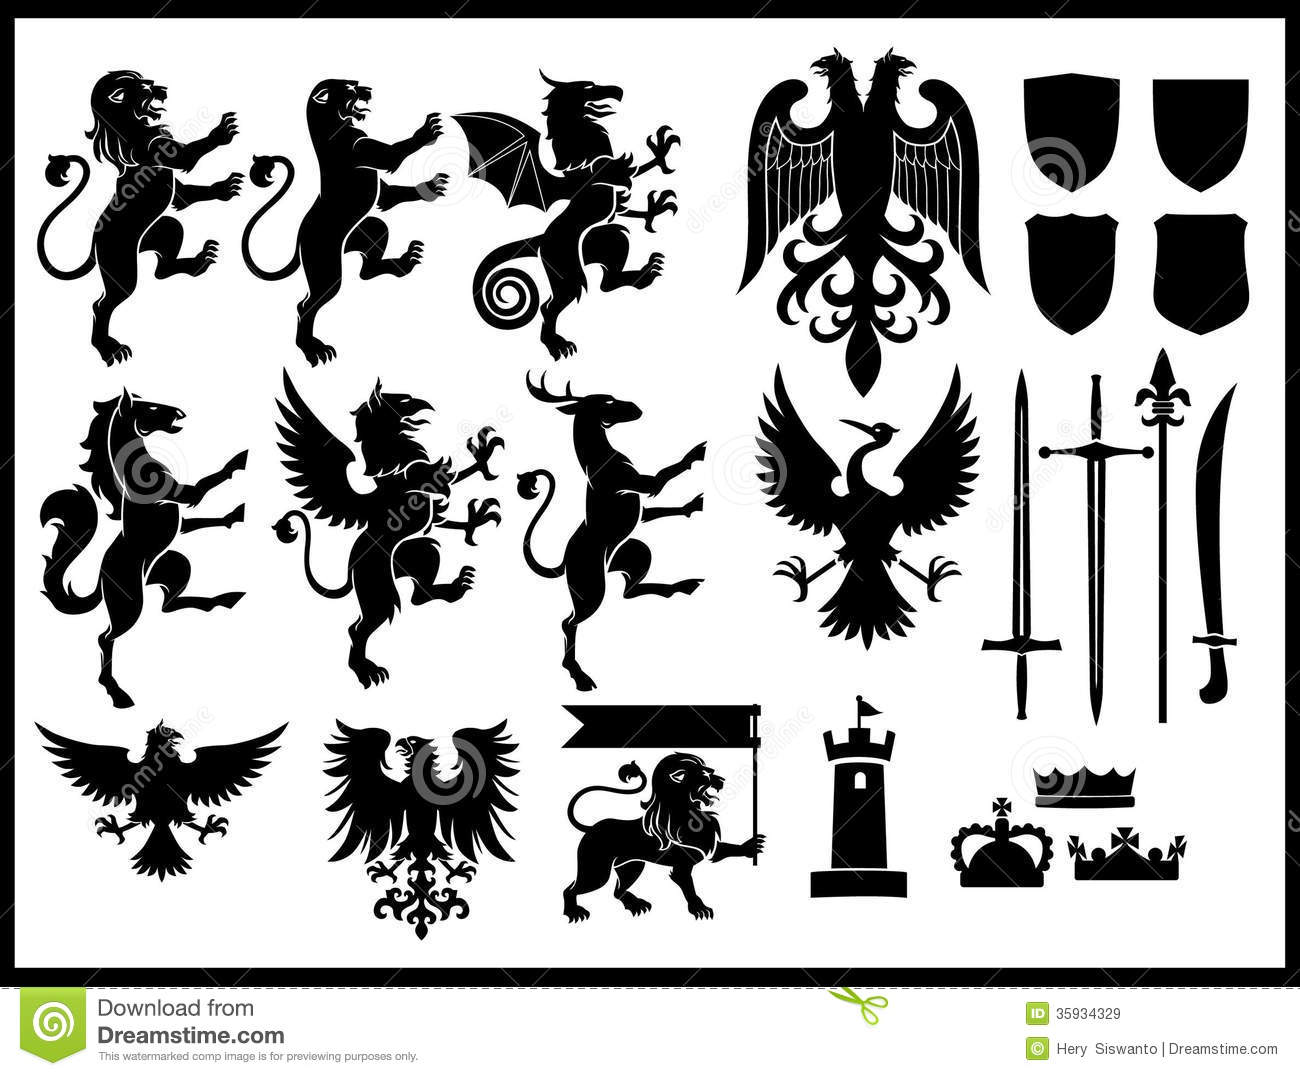 heraldry clipart download free - photo #36